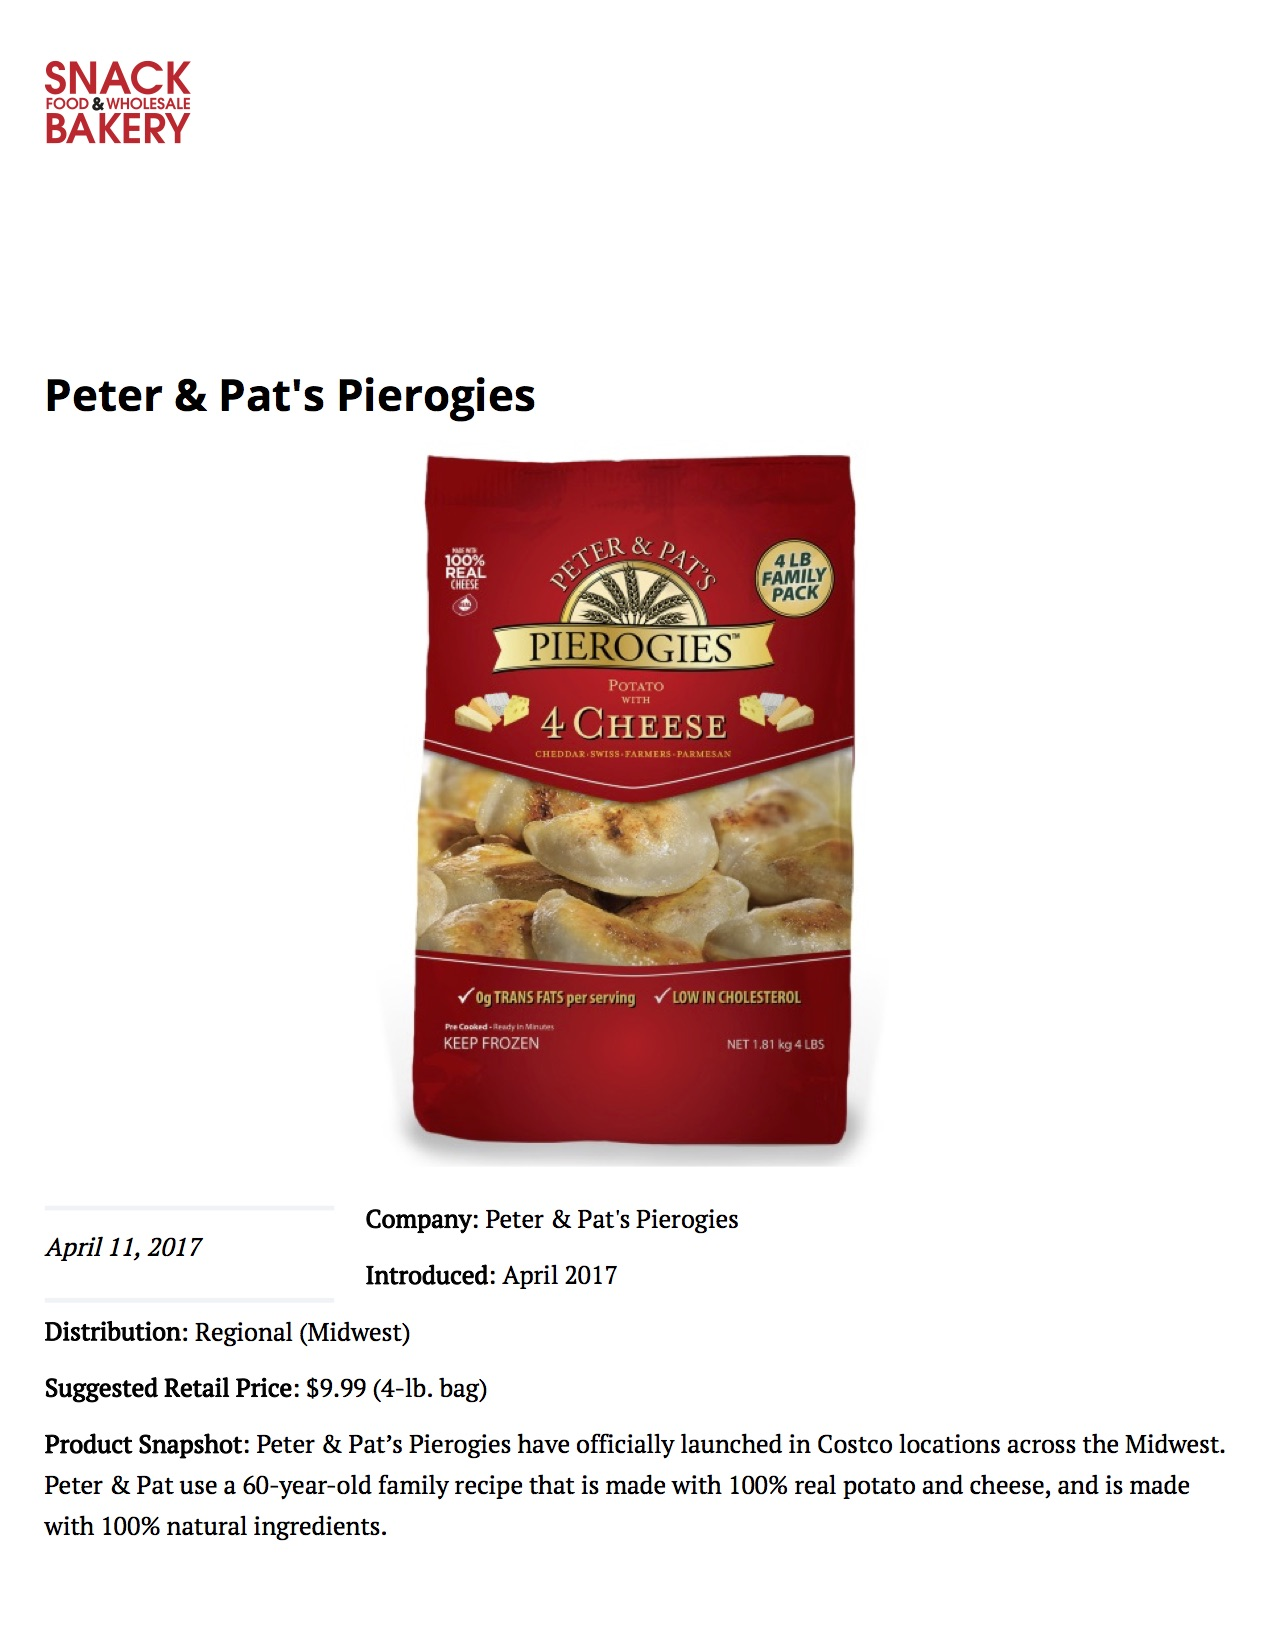 Peter & Pat's Pierogies featured on  Snack & Bakery 1/2